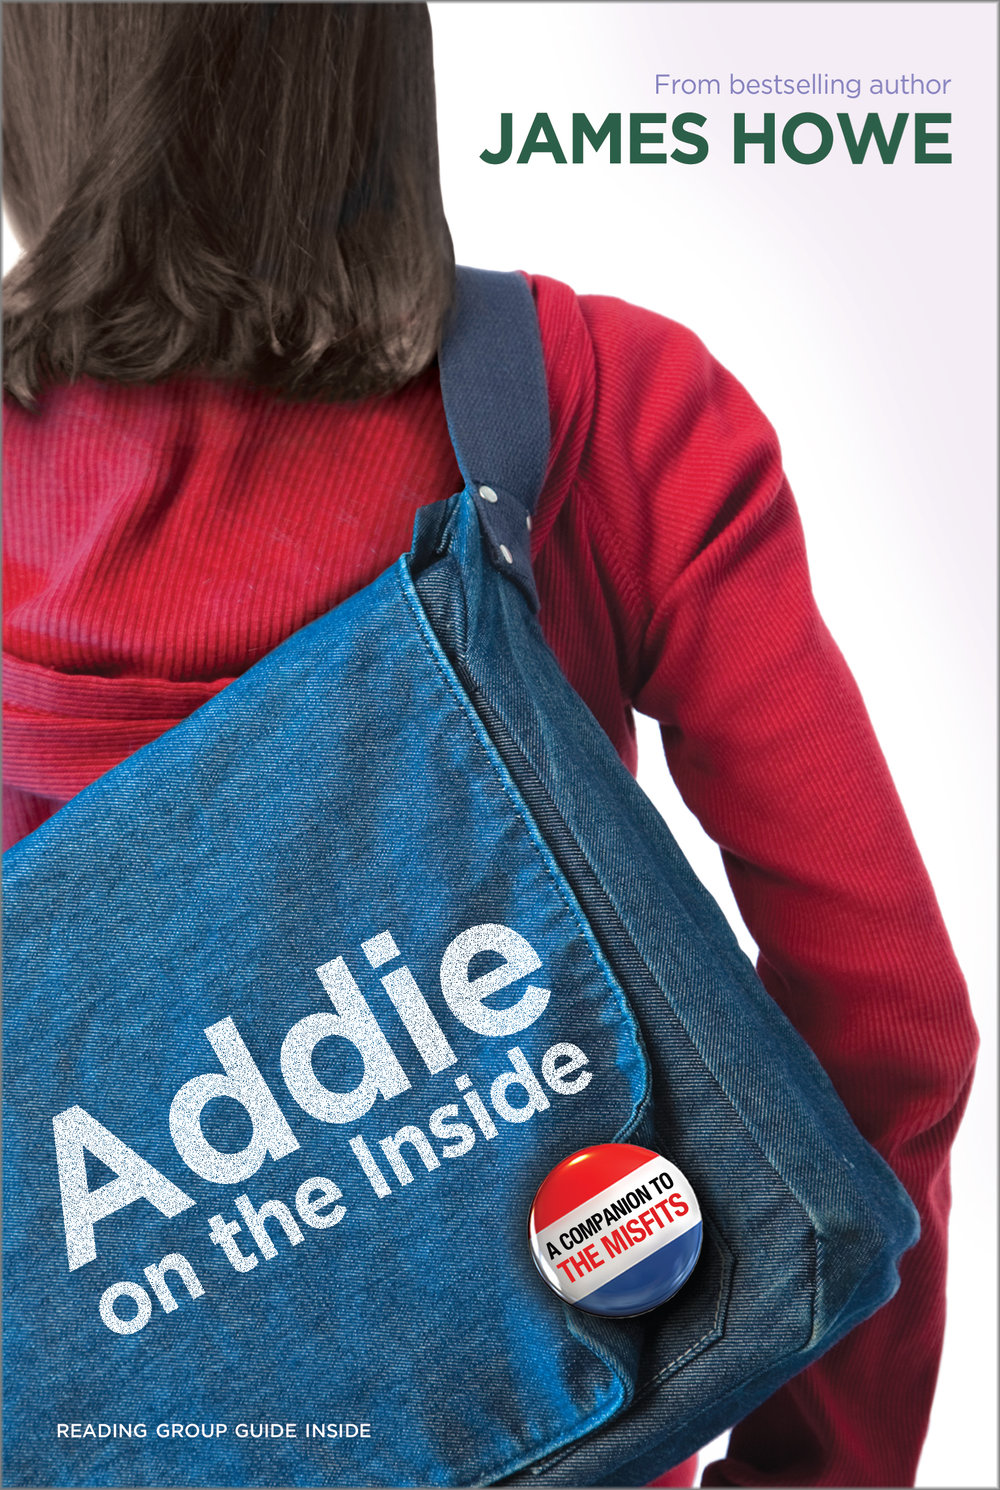 Addie on the Inside Curriculum Guide